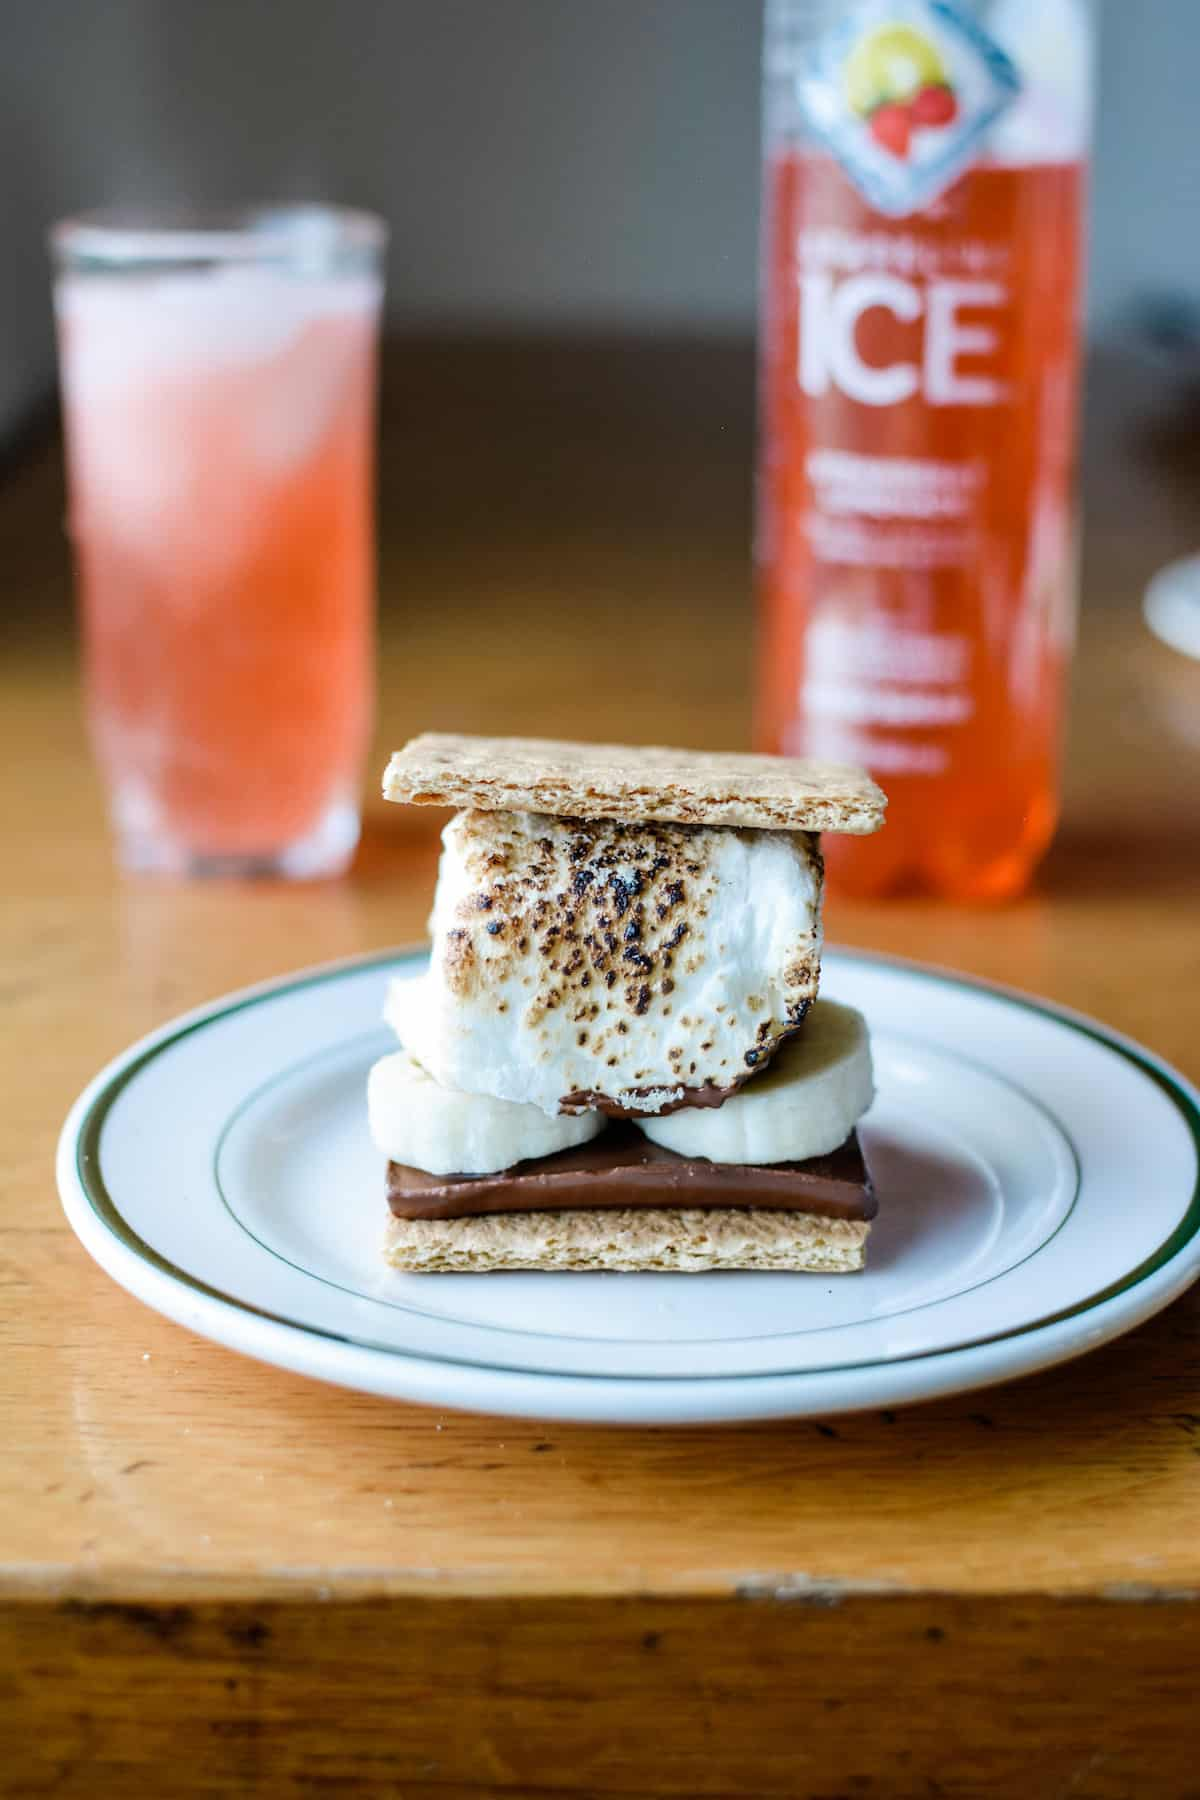 A s'mores dessert made with graham cracker, chocolate, frozen banana slices, and toasted marshmallow on a white plate sitting on a wood table.